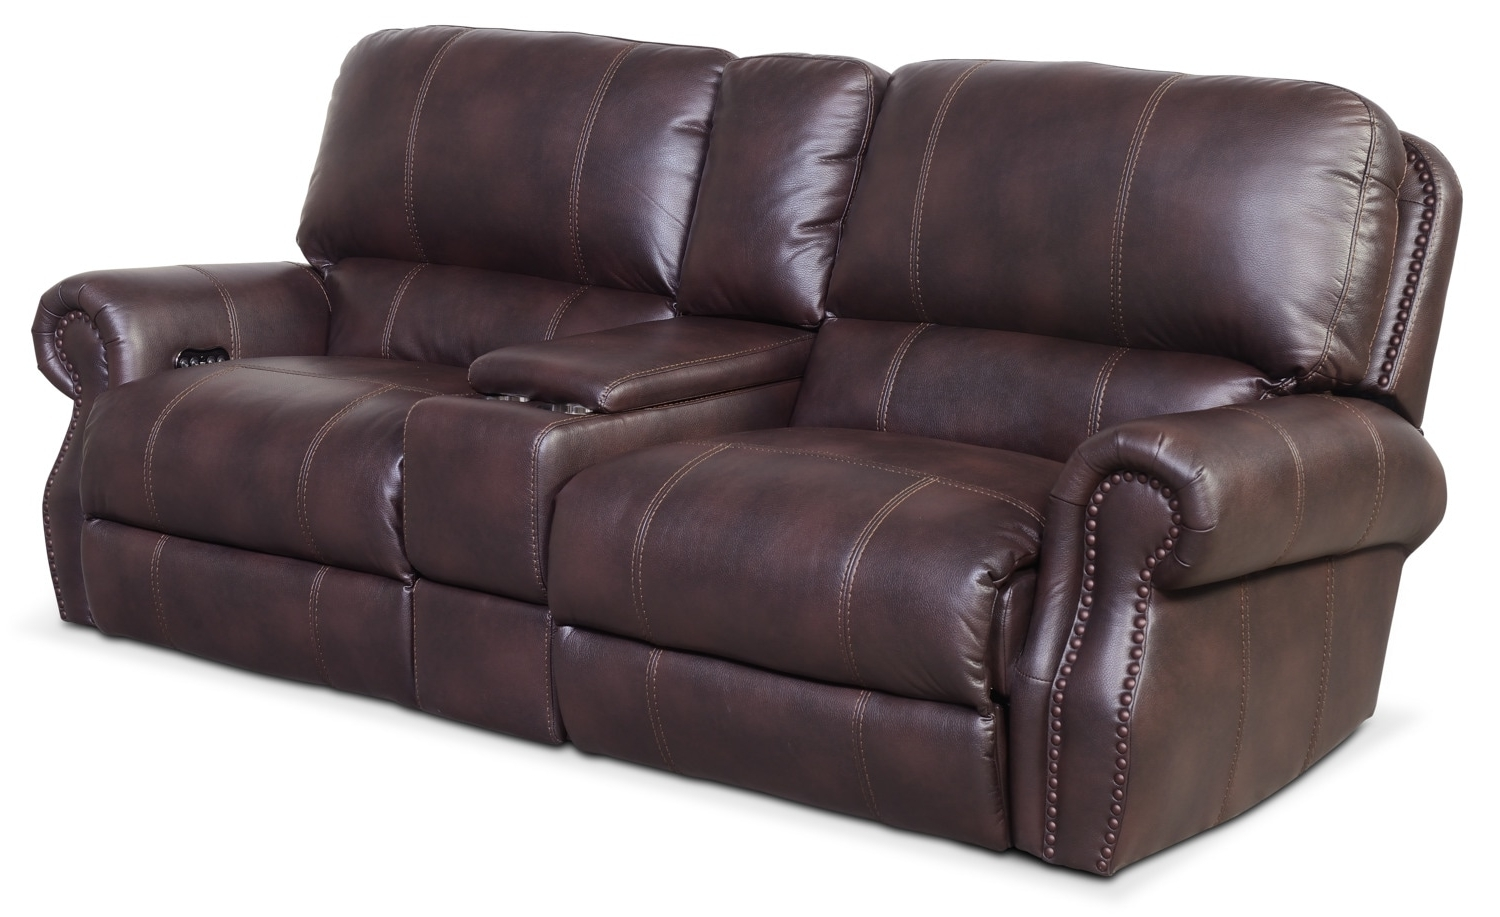 Dartmouth 3 Piece Power Reclining Sofa With Console – Burgundy Inside Current Sofas With Consoles (View 14 of 15)